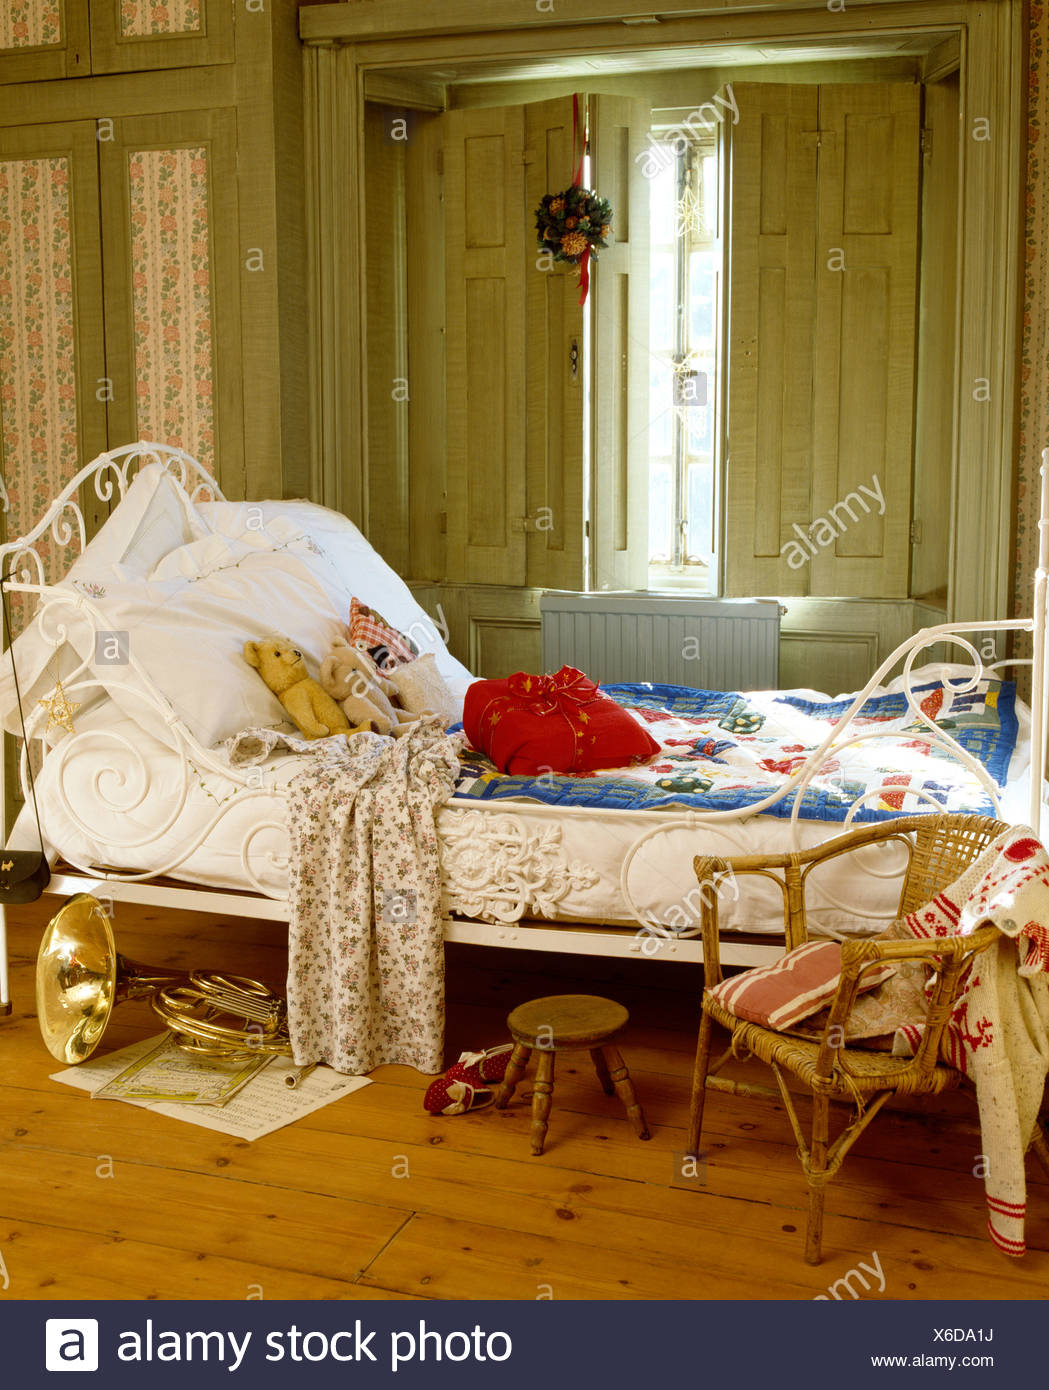 White Pillows And Blue Quilt On Antique Wrought Iron Bed In Front Of Window With Painted Shutters In Child S Bedroom Stock Photo Alamy